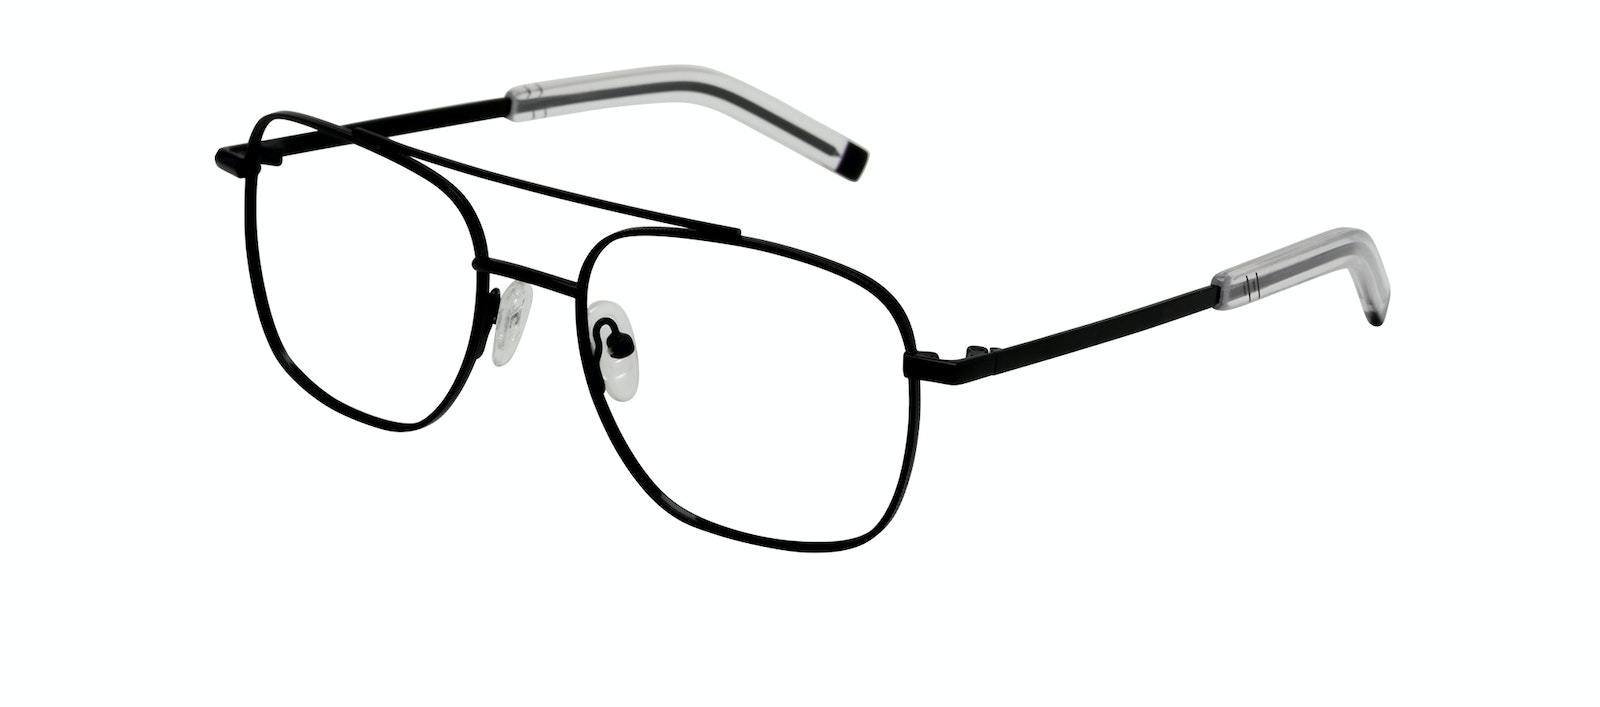 Affordable Fashion Glasses Aviator Eyeglasses Men Drift Black Tilt